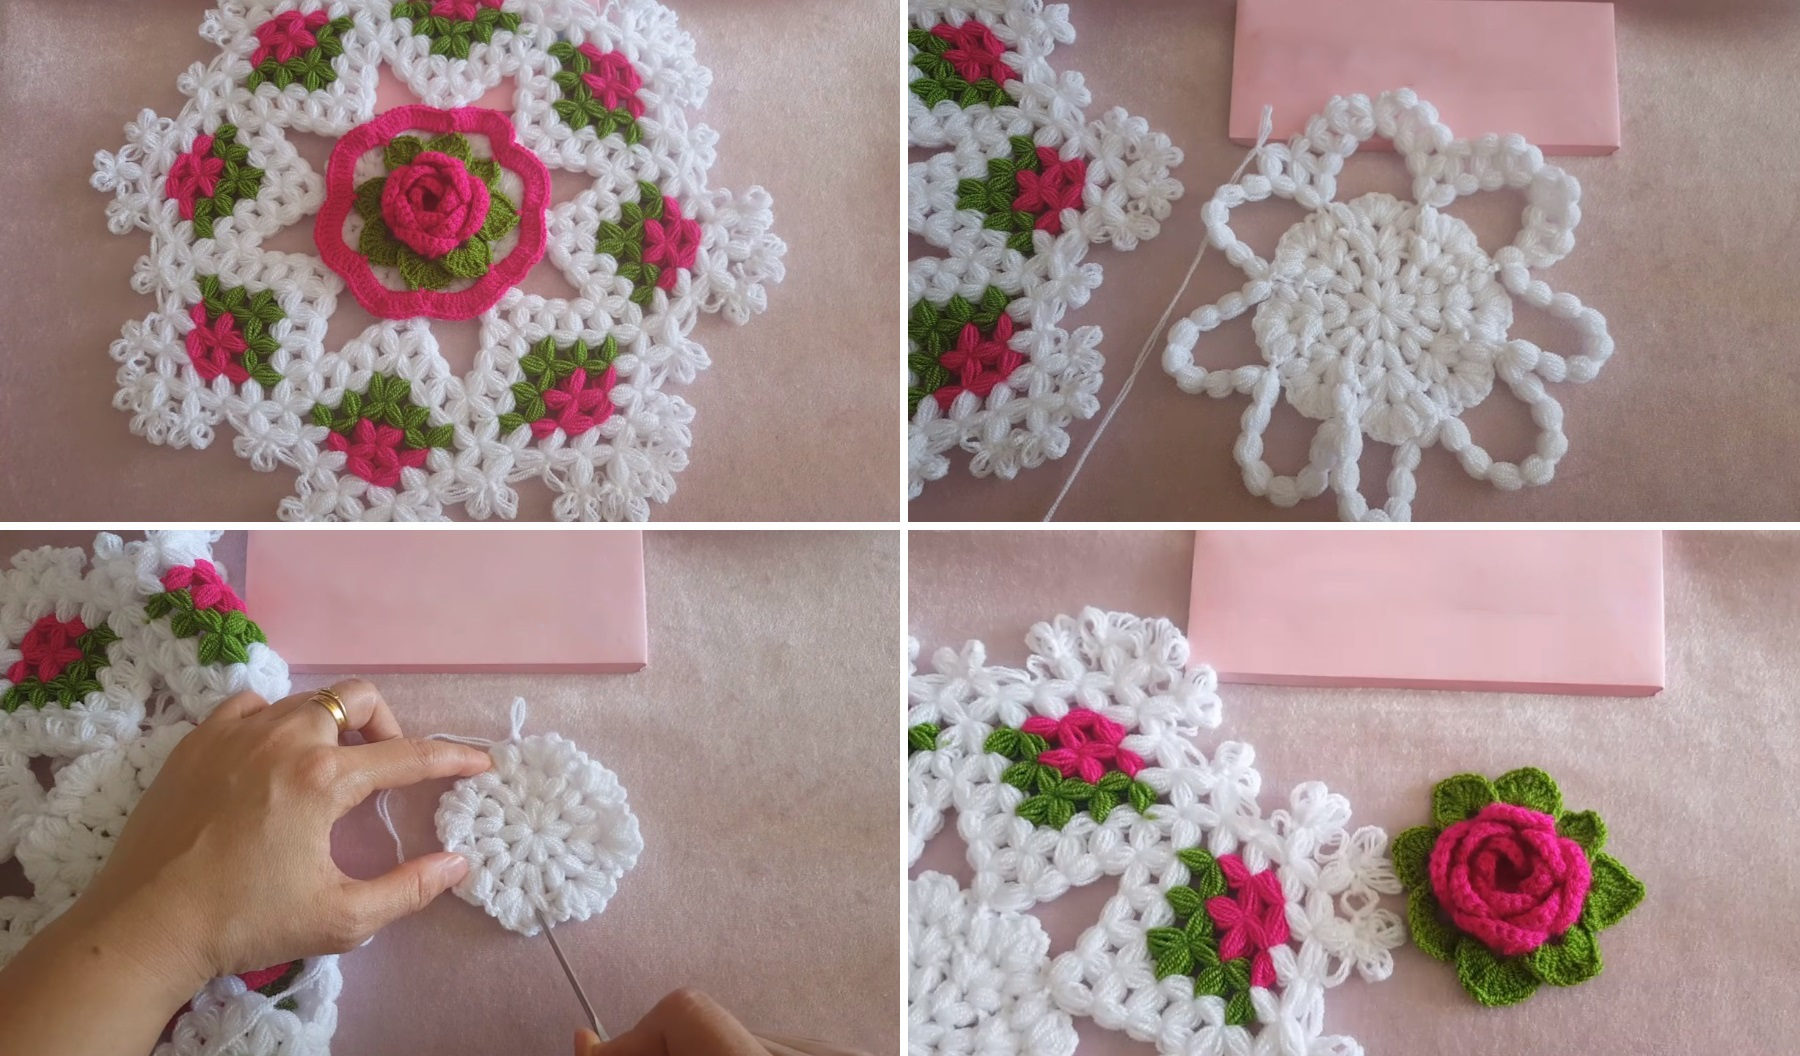 Crochet Table Path Design Peak